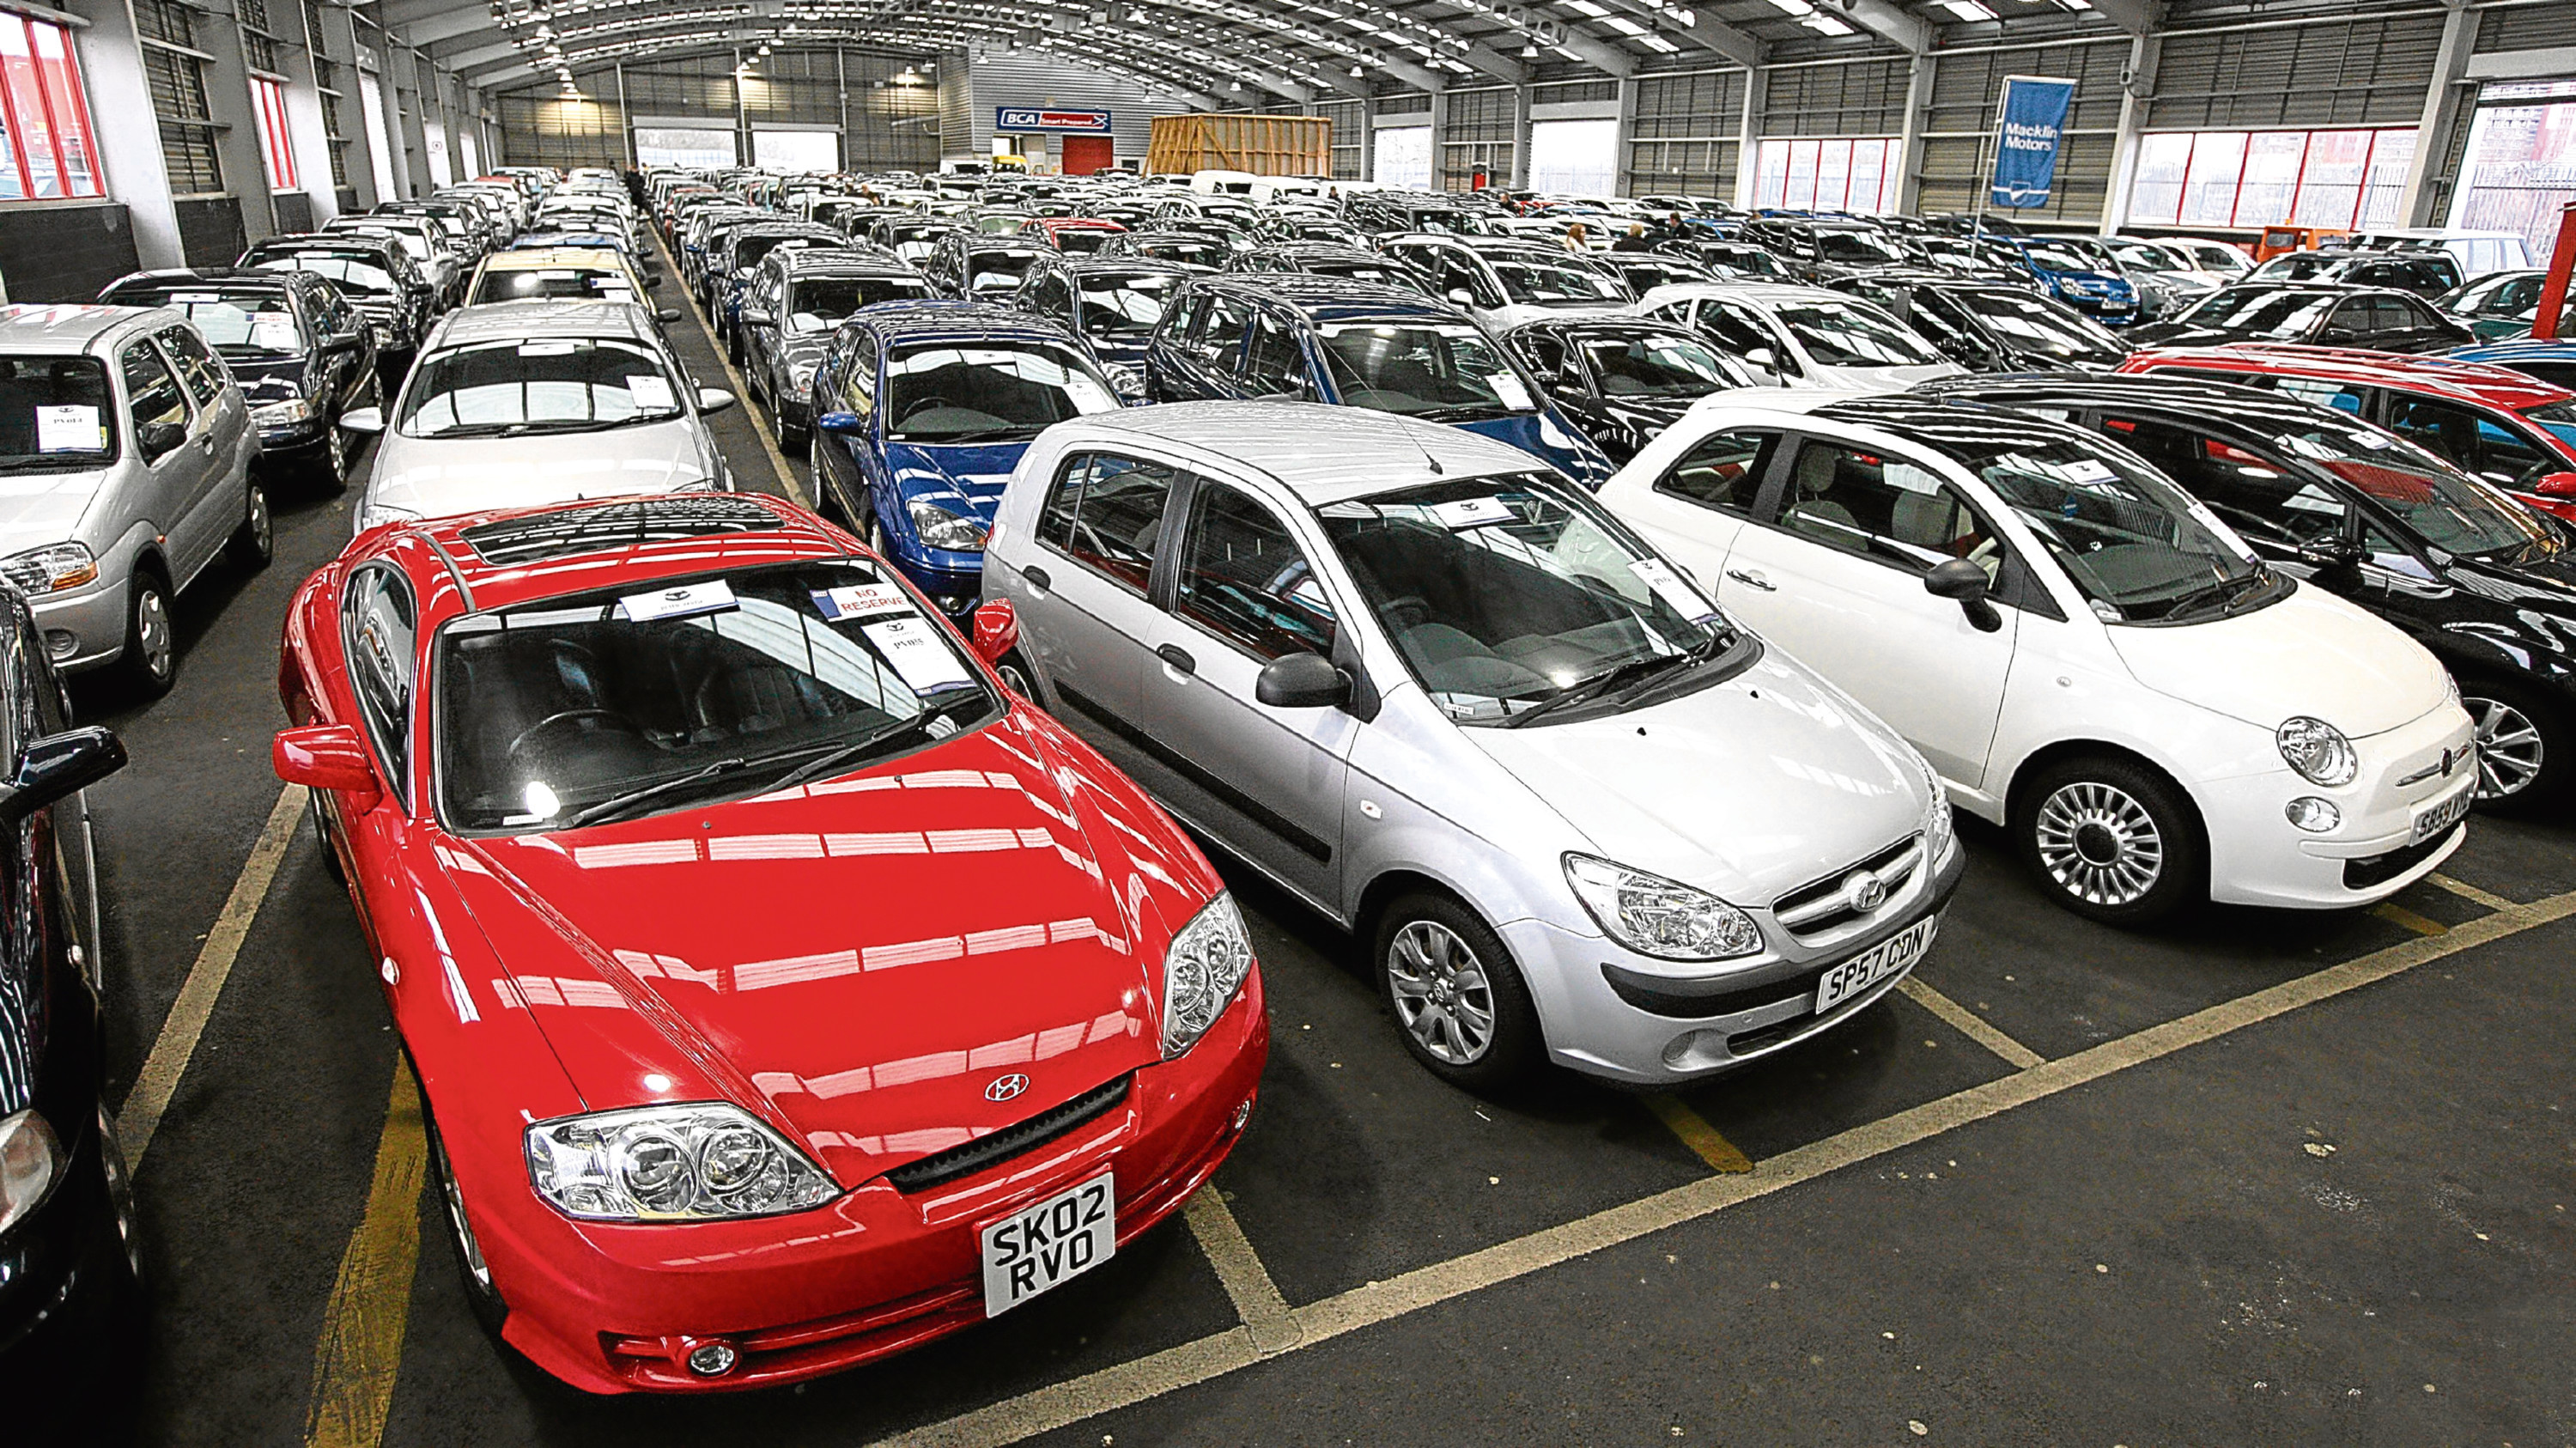 Looking to sell your old car? Check out our top tips - The Courier